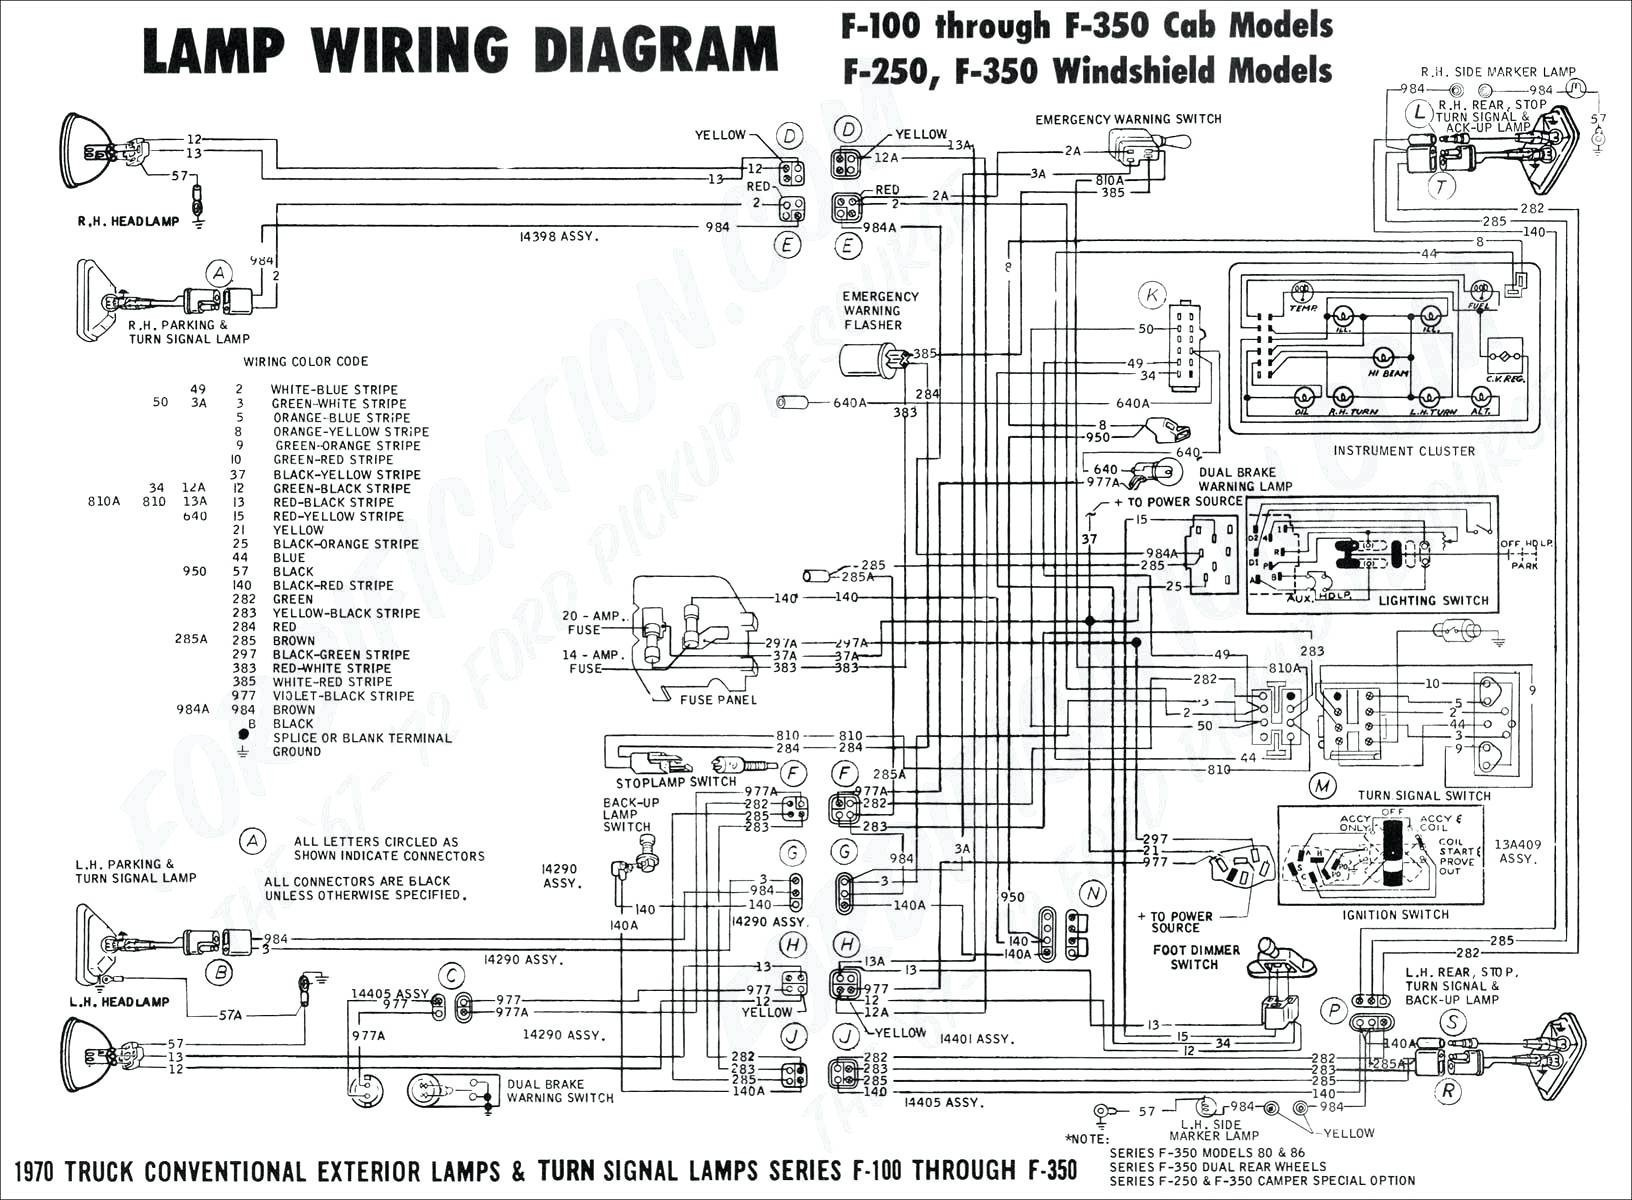 2000 Kia Sportage Wiring Diagram from detoxicrecenze.com